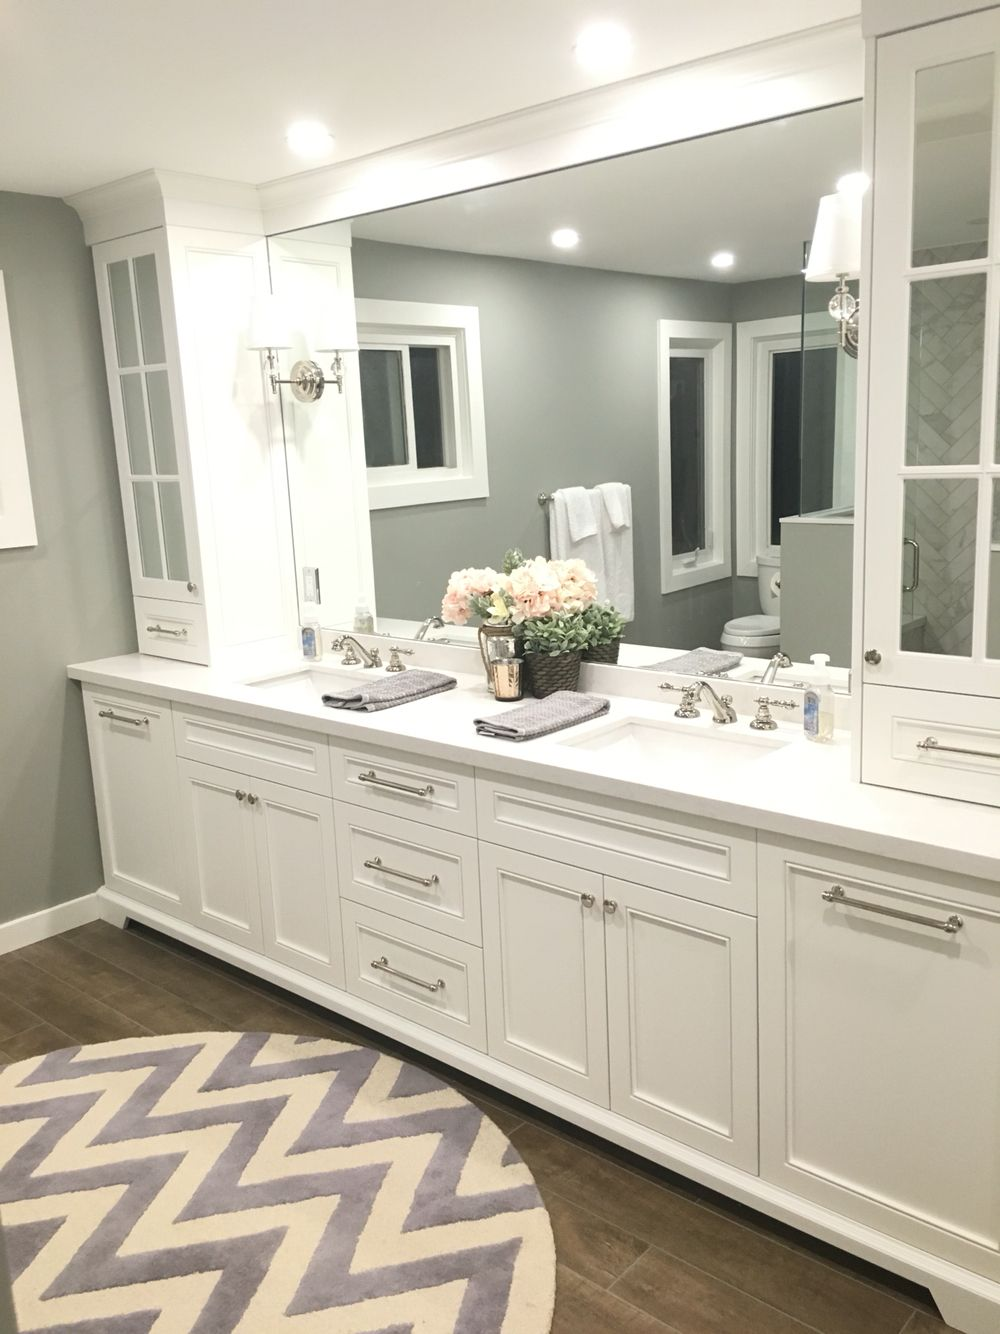 Just Got a Little Space These Small Bathroom Designs Will Inspire You  Custom vanity Painted